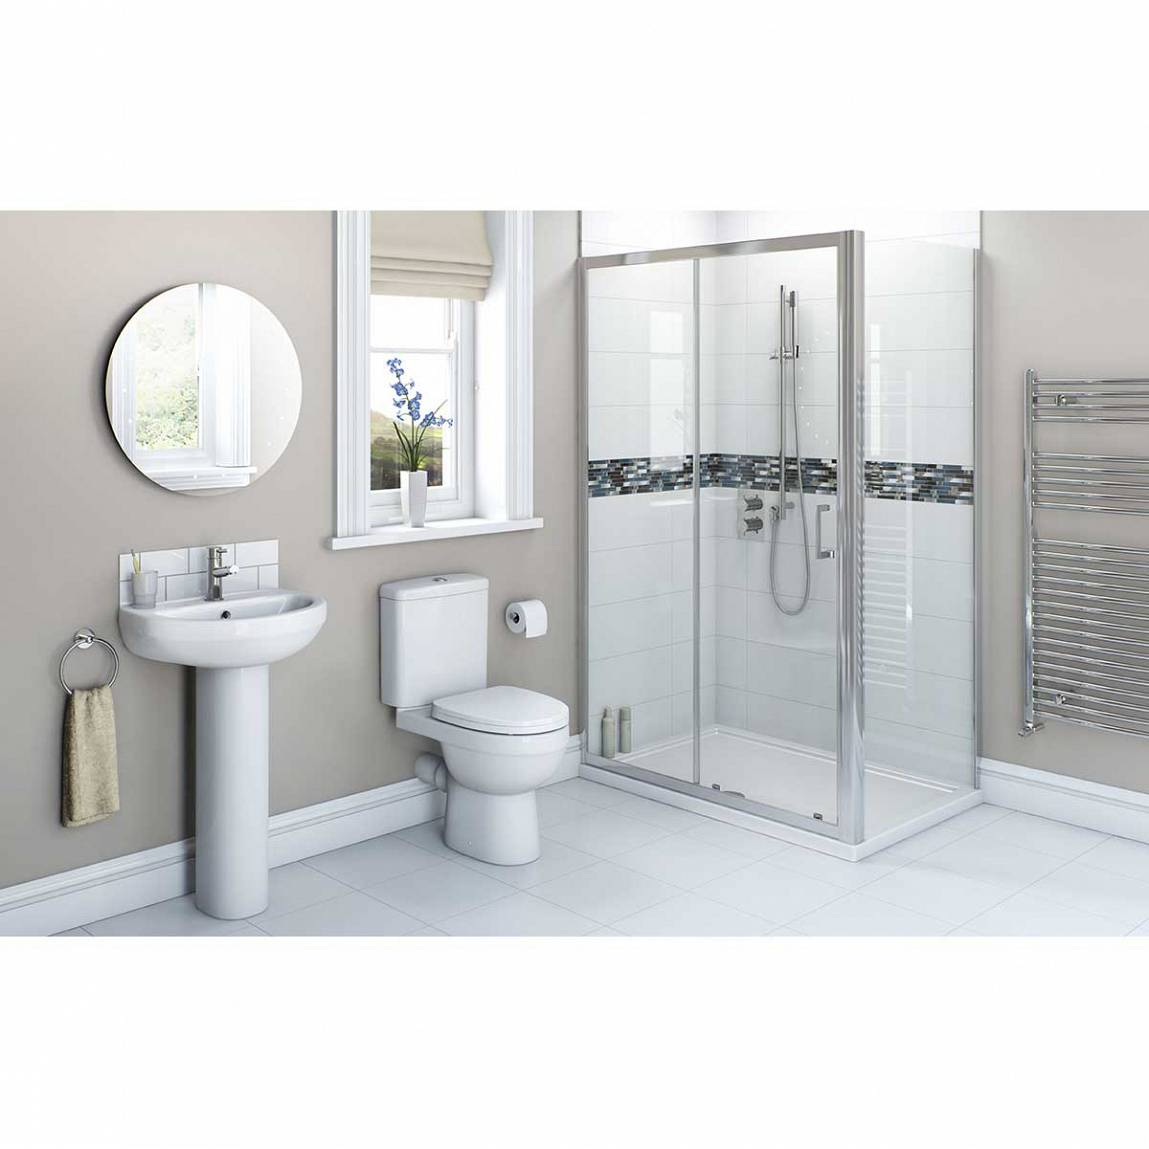 Image of Energy Bathroom set with 1600x760 Sliding Enclosure